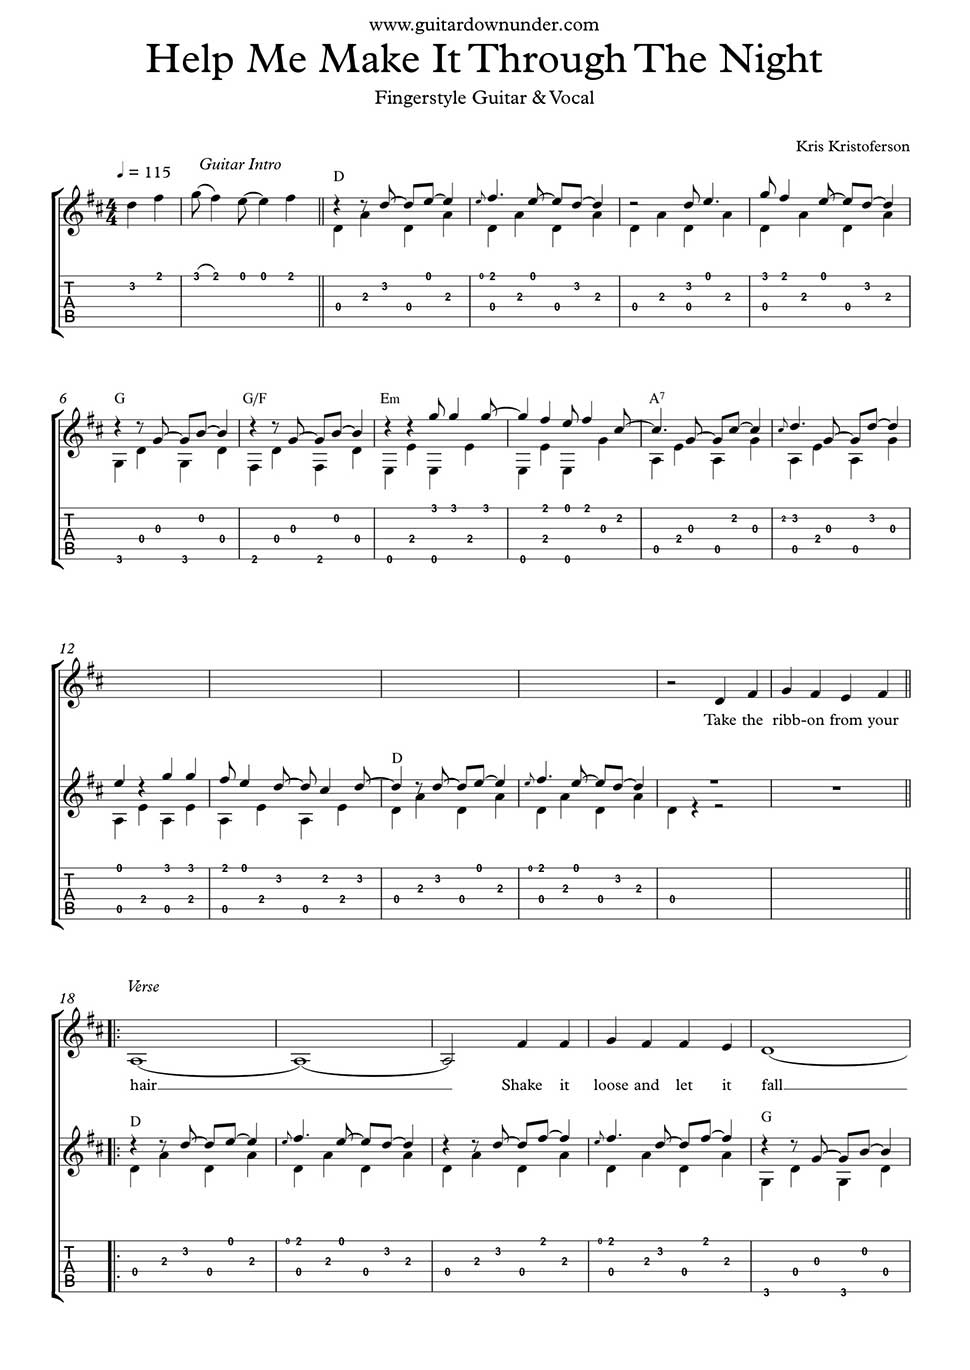 Help Me Make It Through The Night Fingerstyle Guitar Part In Tab